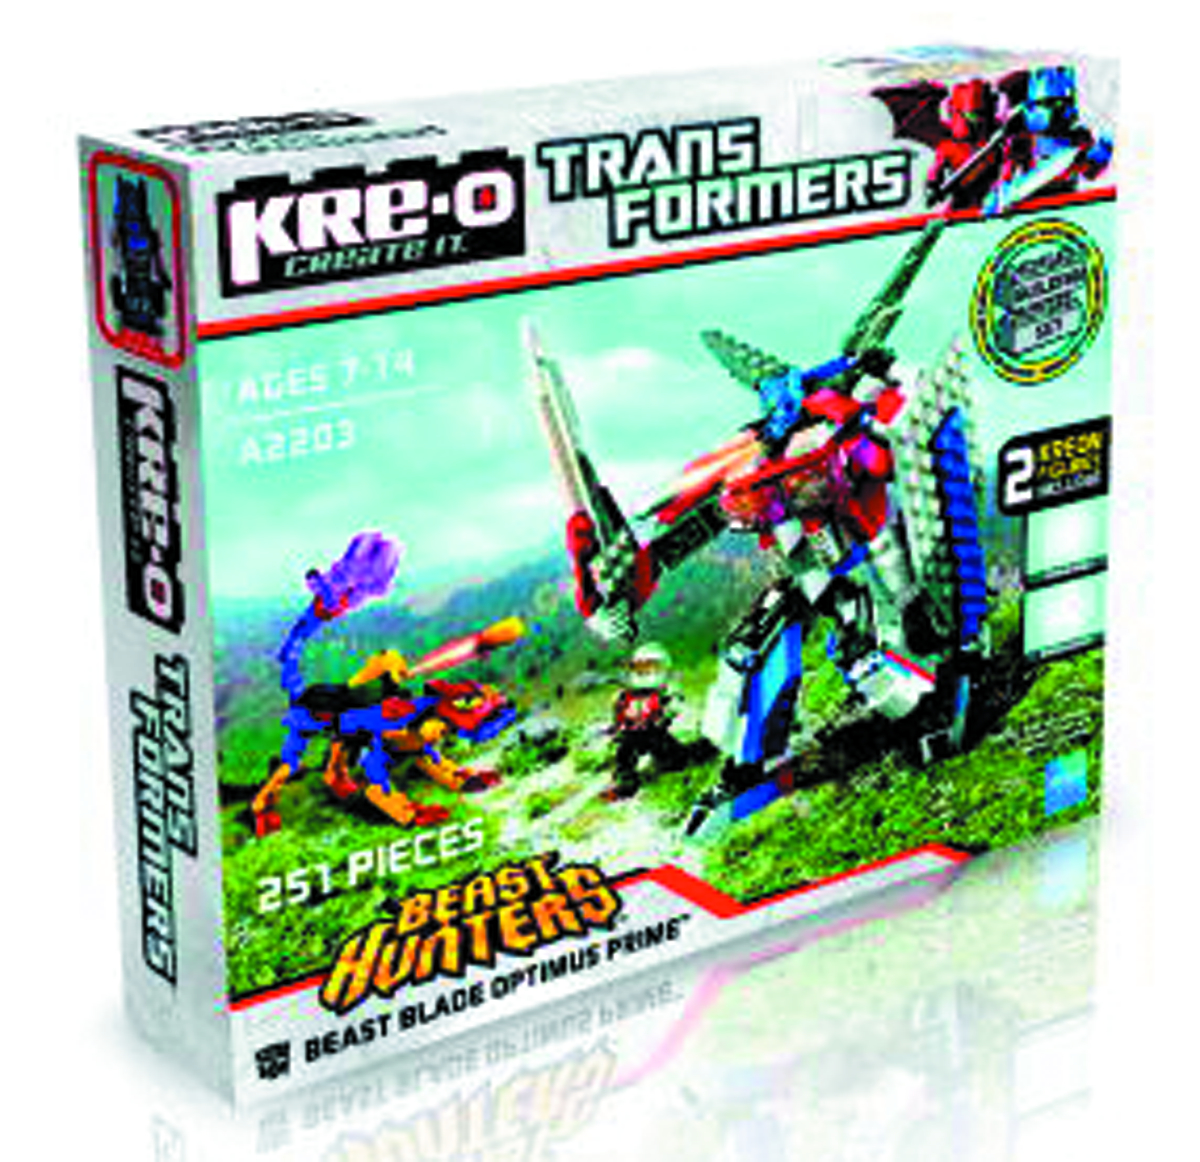 KRE-O TRANSFORMERS OPTIMUS VS BEAST SET